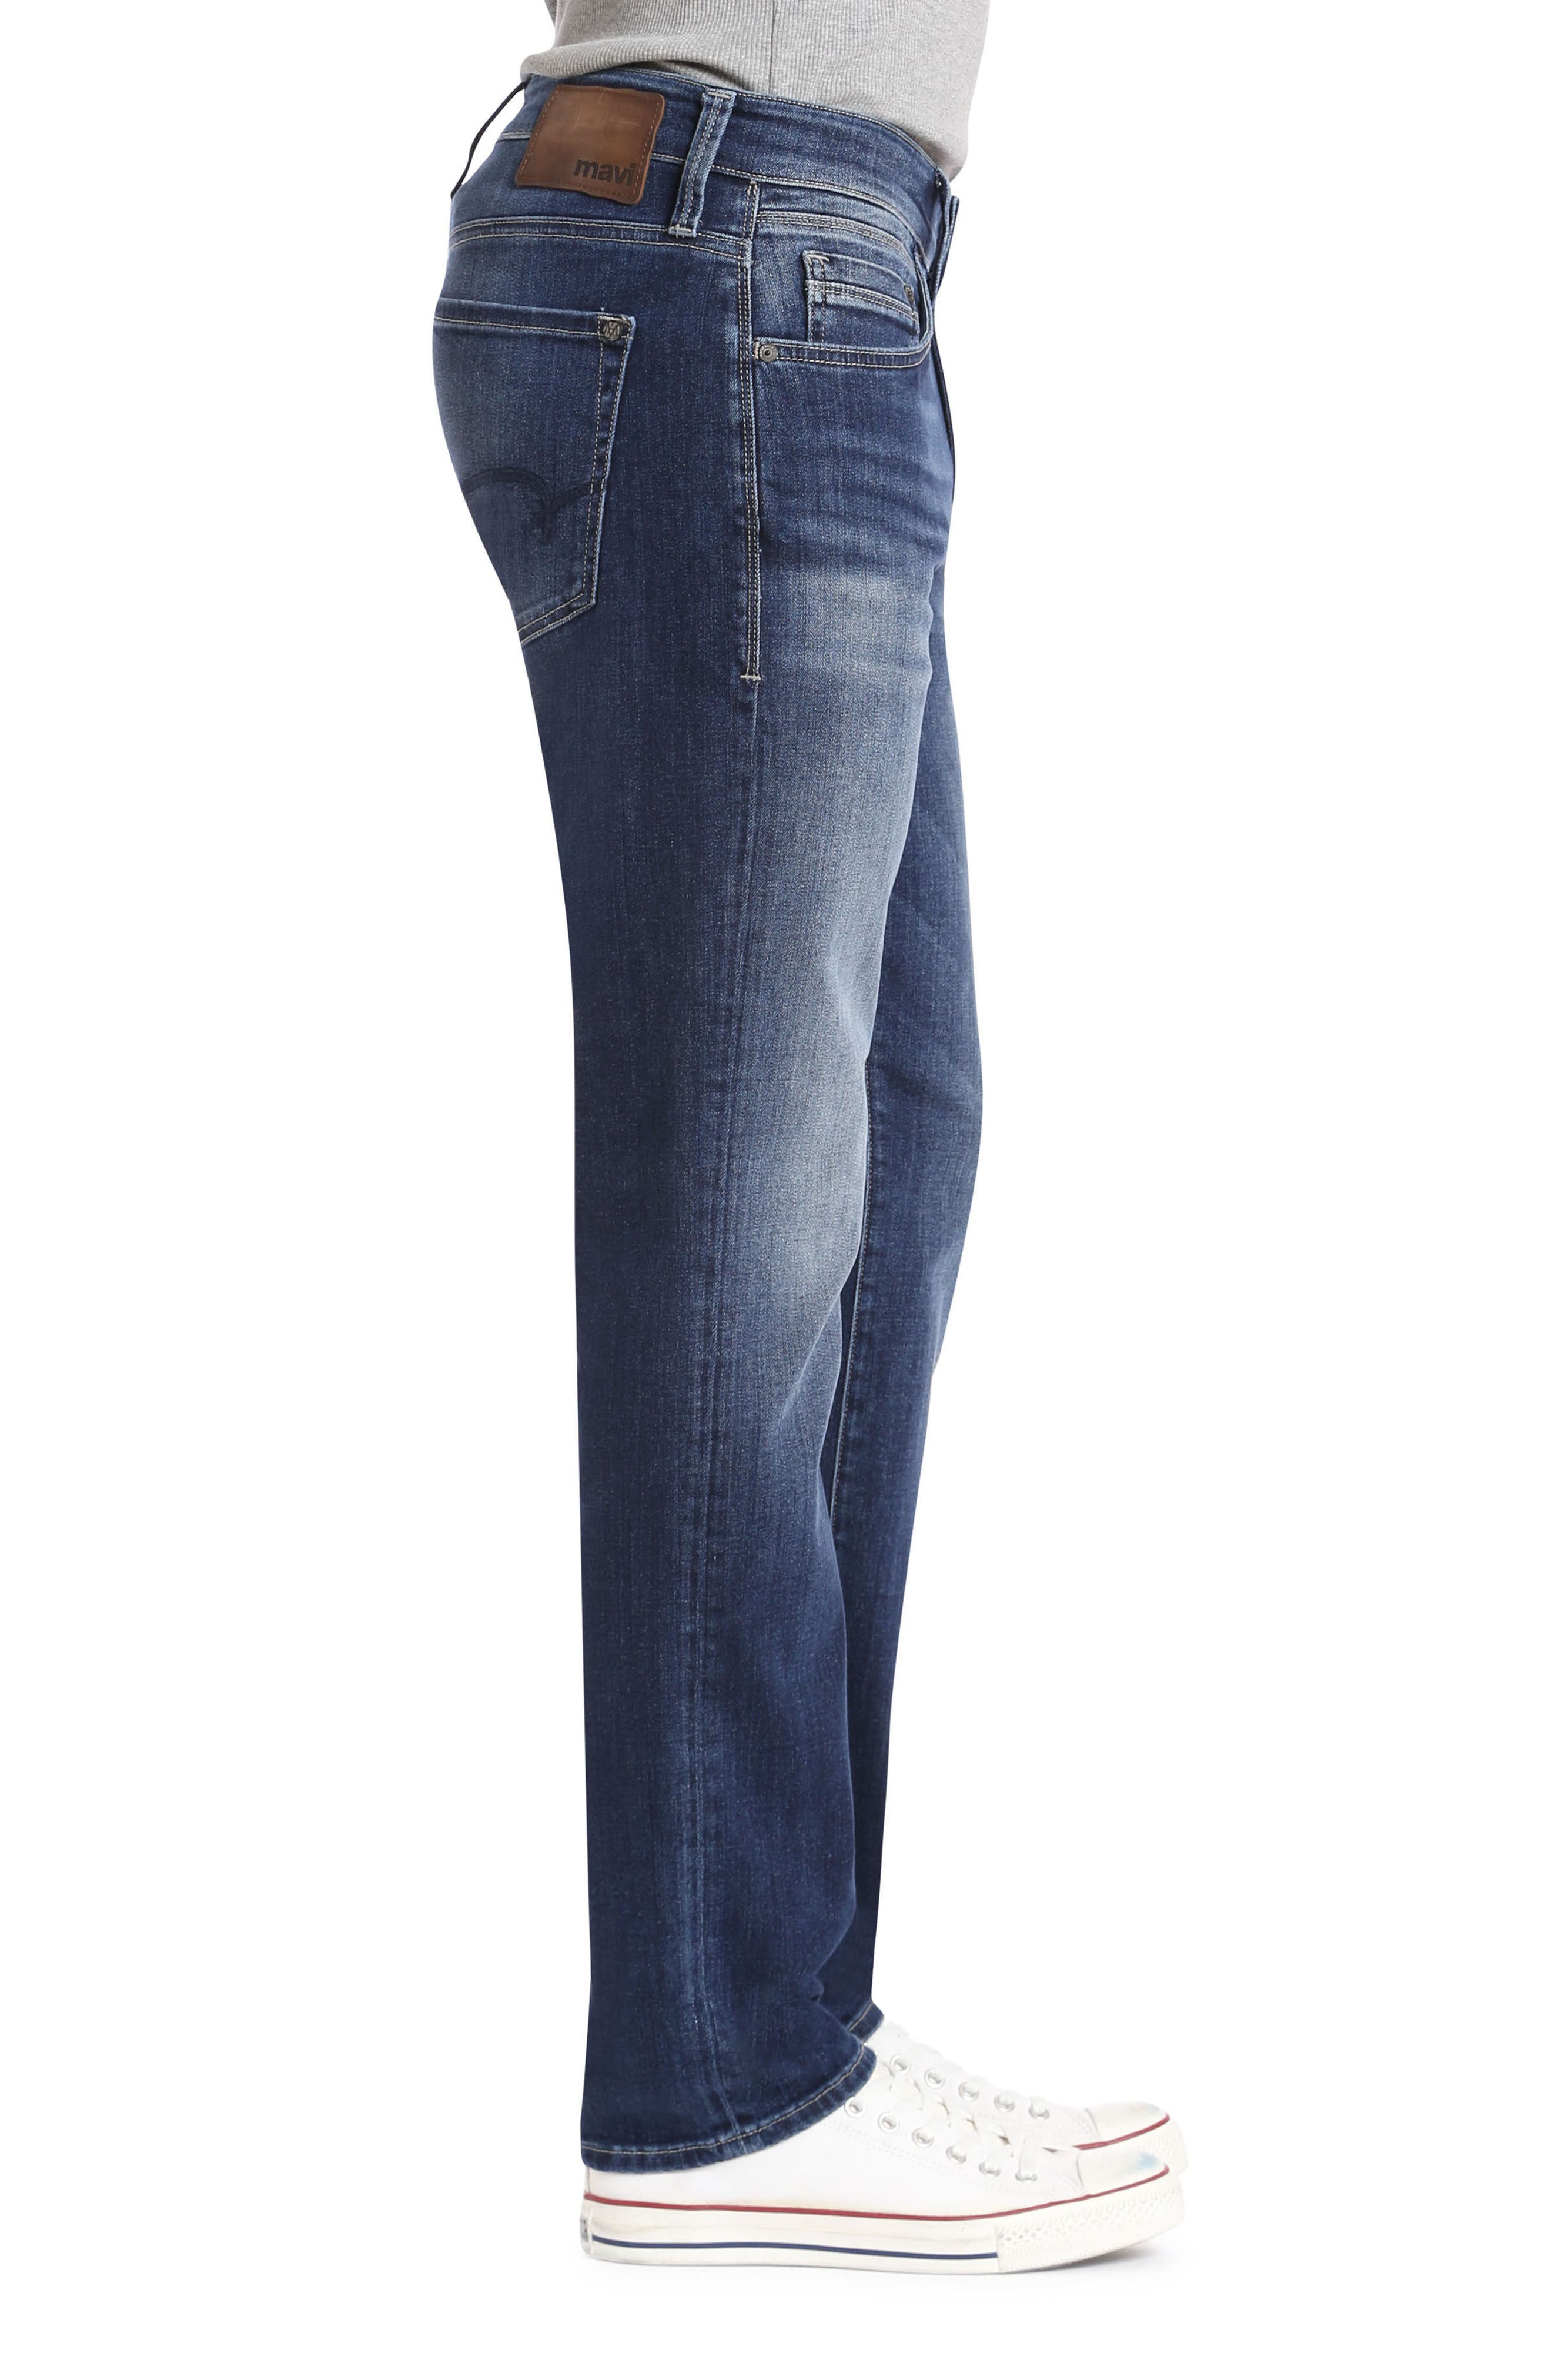 Marcus Slim Straight Leg Jeans,                             Alternate thumbnail 3, color,                             Dark Blue Williamsburg